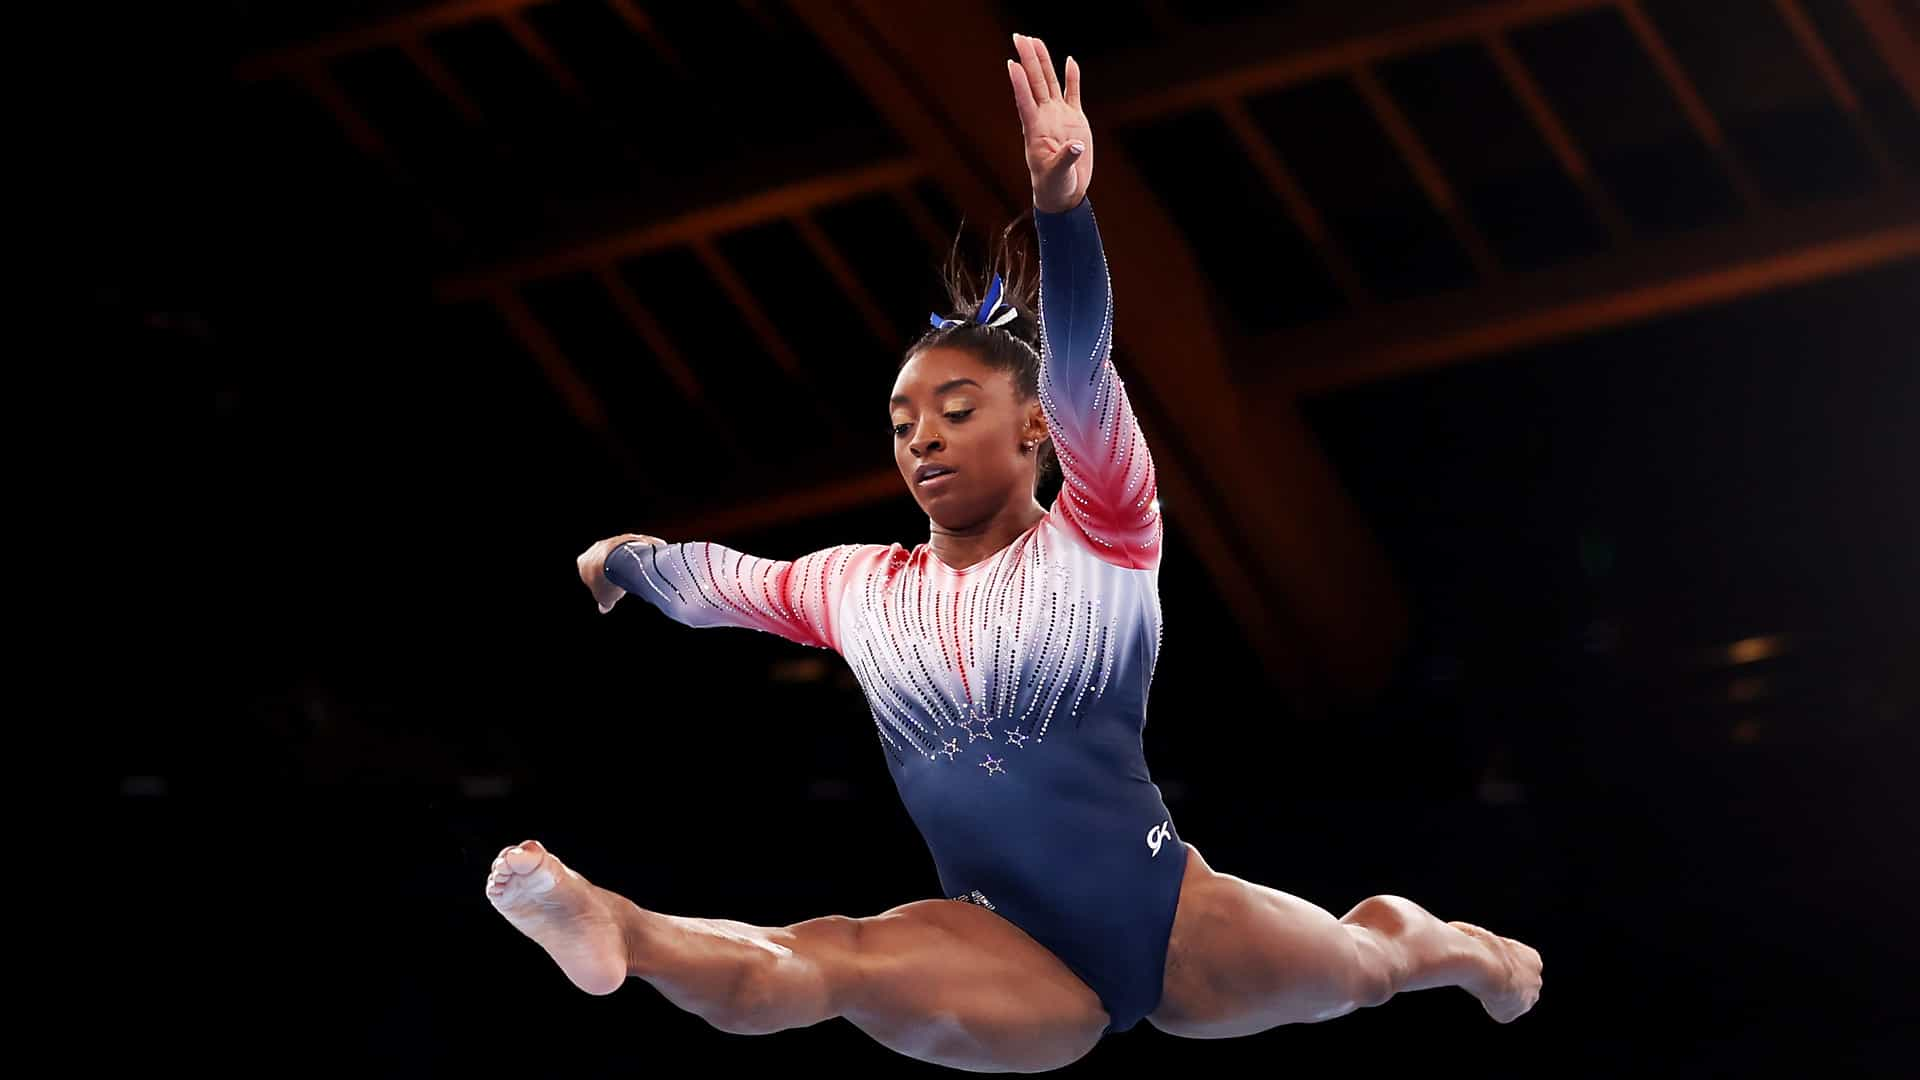 Image for Editors' Picks: Moments that defined the 2020 Tokyo Olympic Games